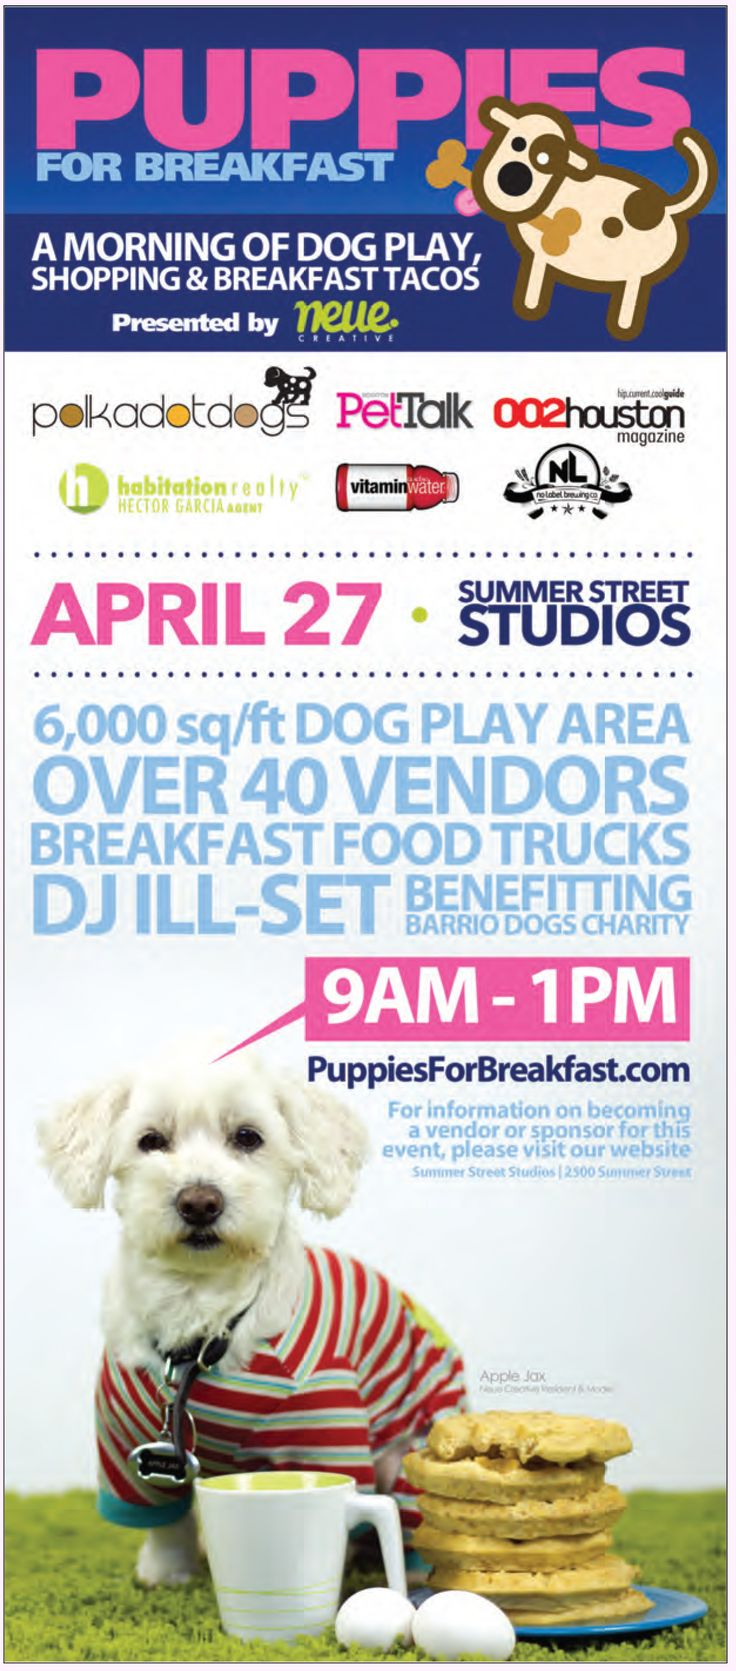 Tomorrow from 9am-1pm is Puppies For Breakfast! The puppy-loving event is a fundraiser benefitting Barrio Dogs Charity that's filled with dog play, breakfast taco trucks, and shopping!